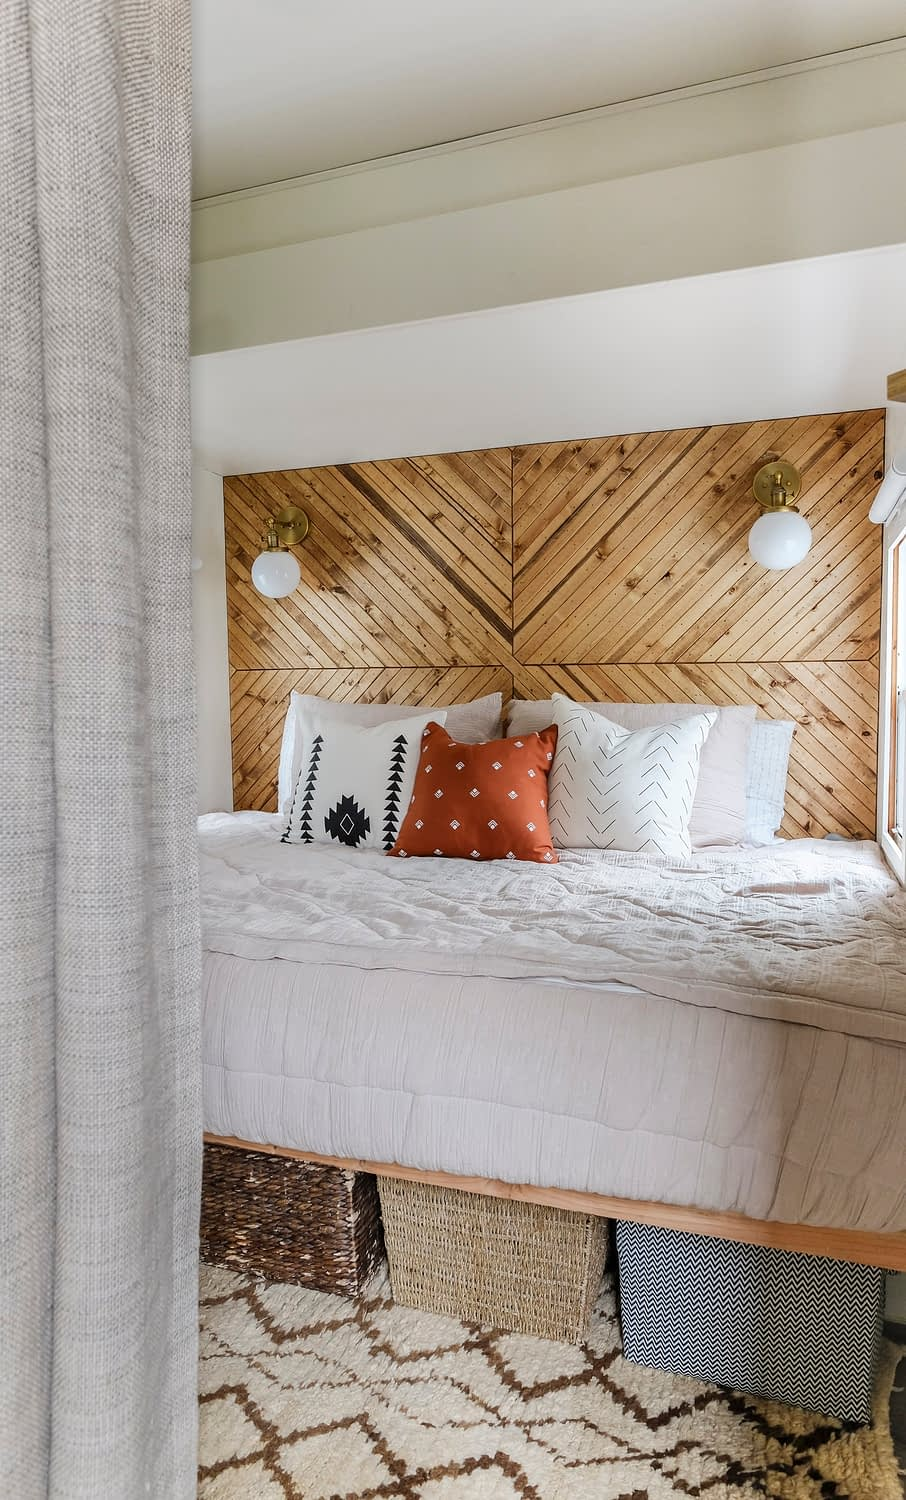 RV bedroom remodel with a wood accent wall